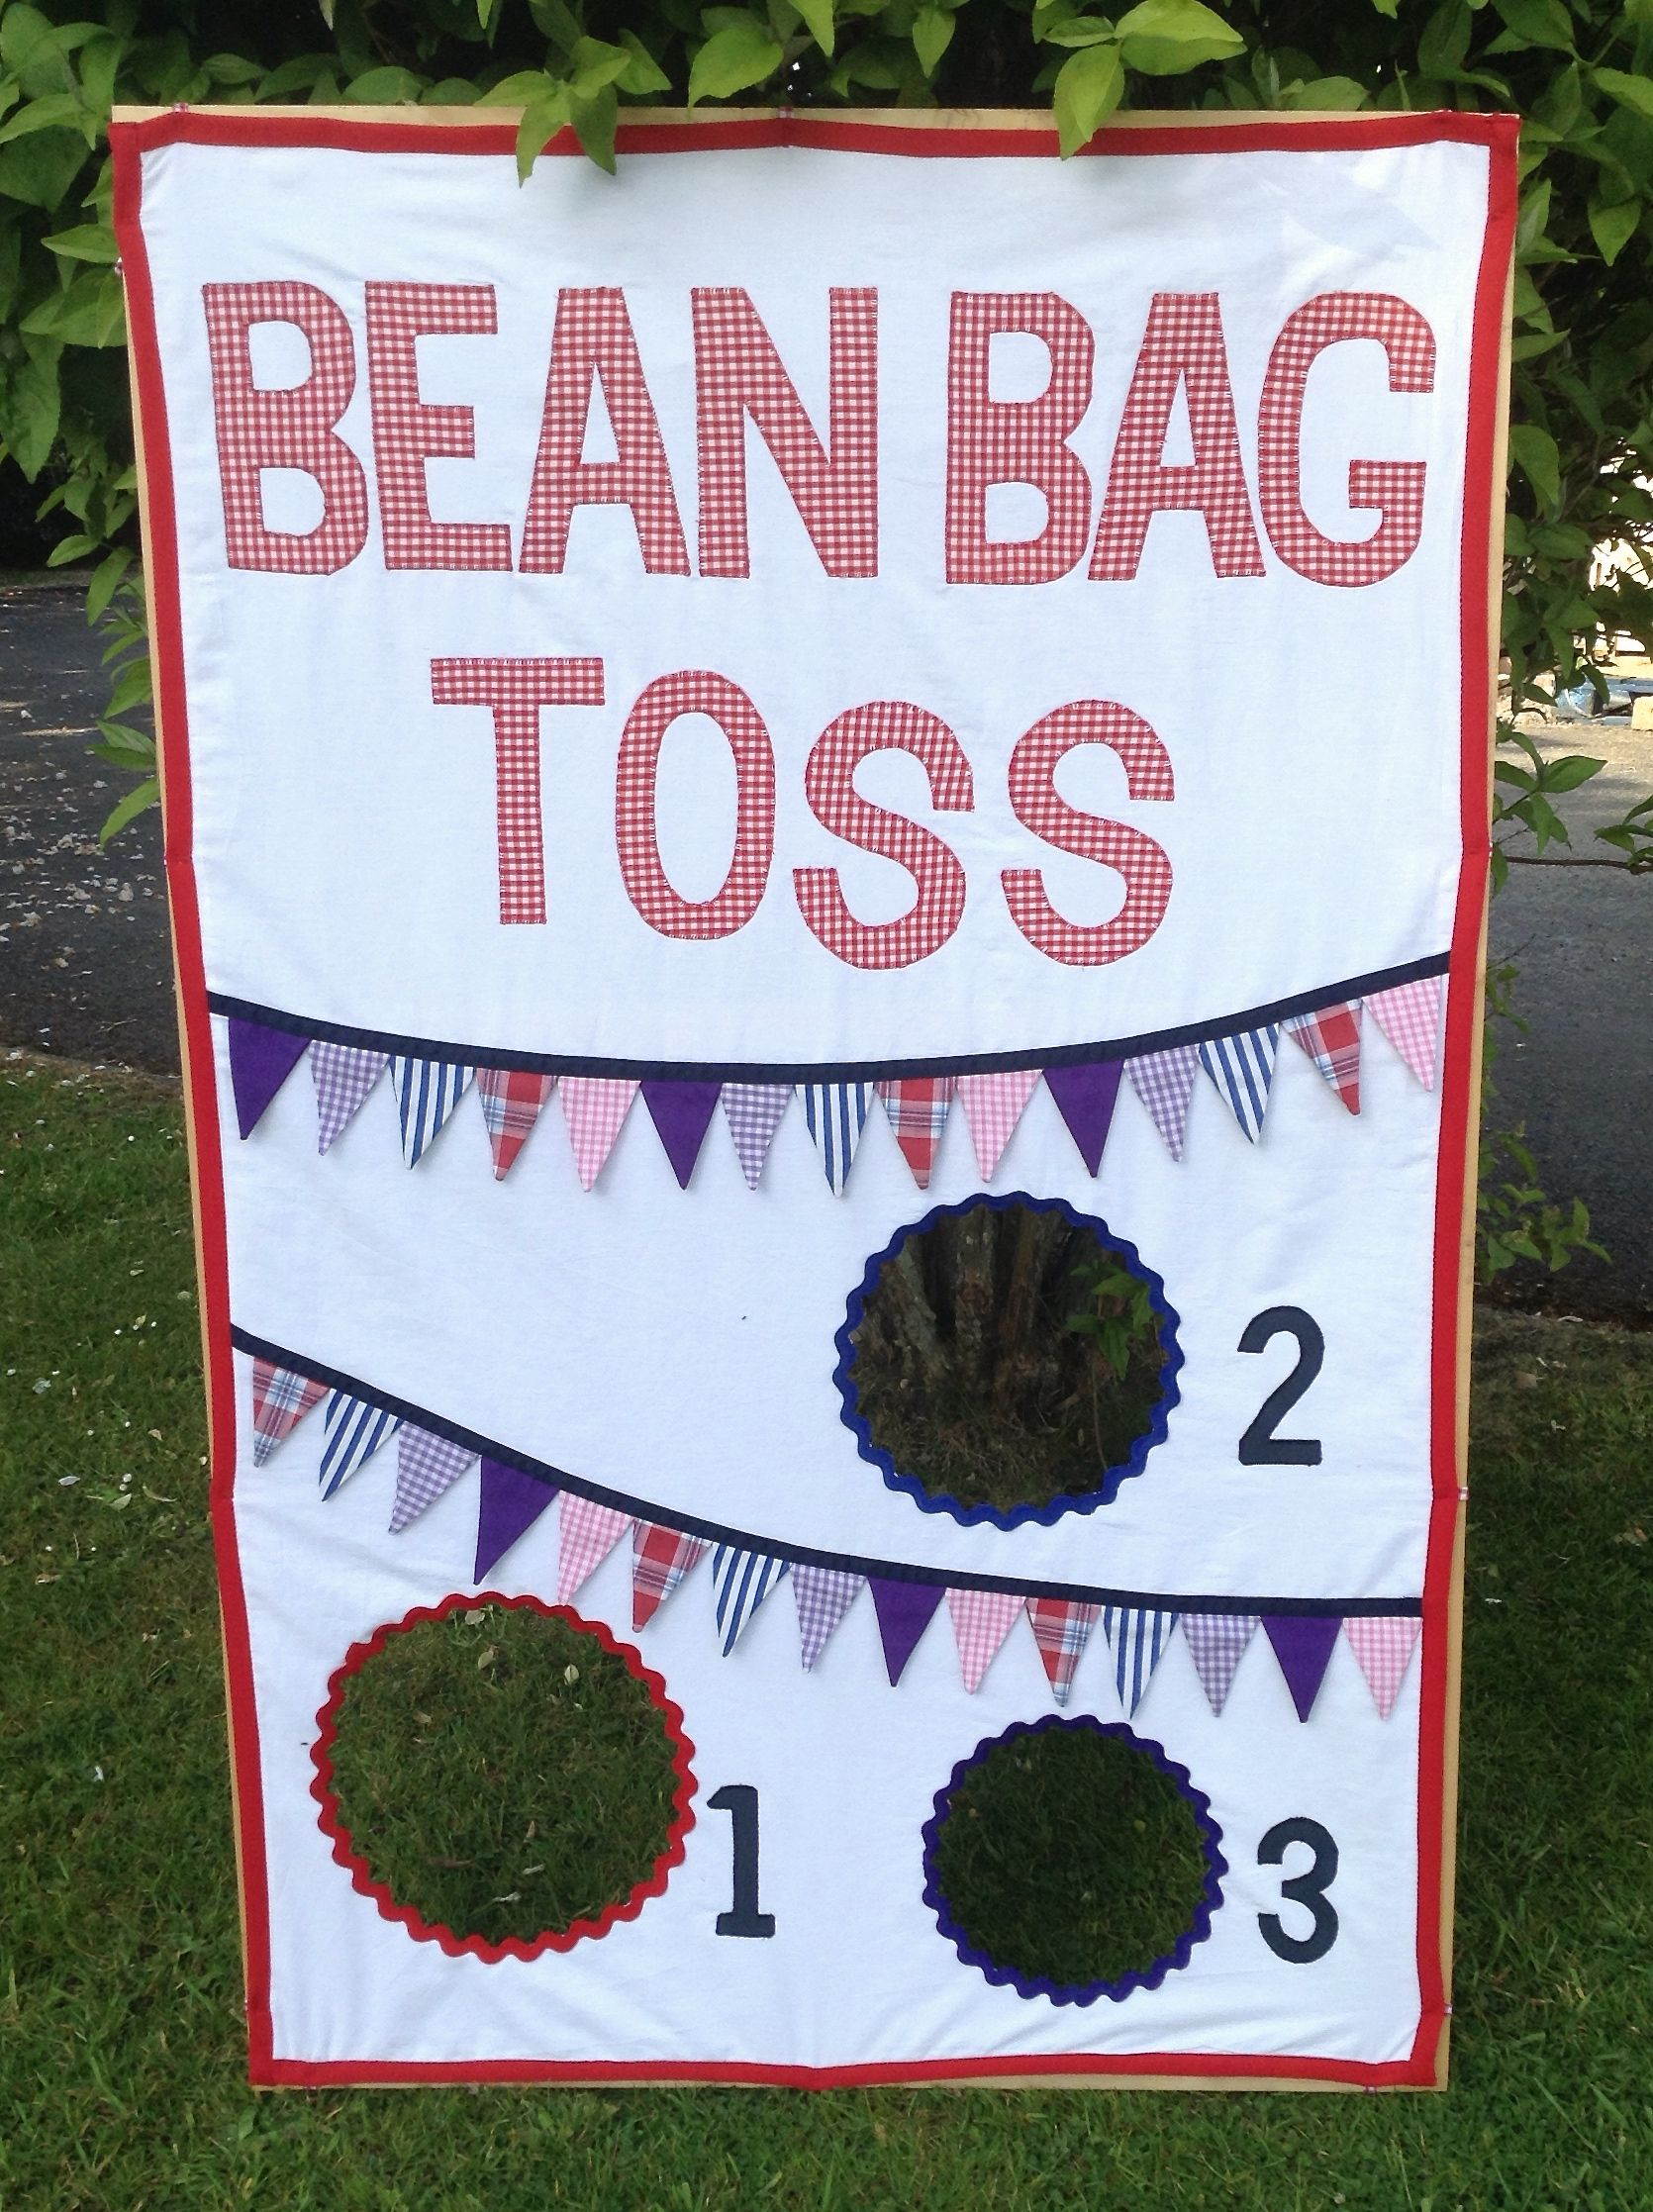 Made for the school fete.